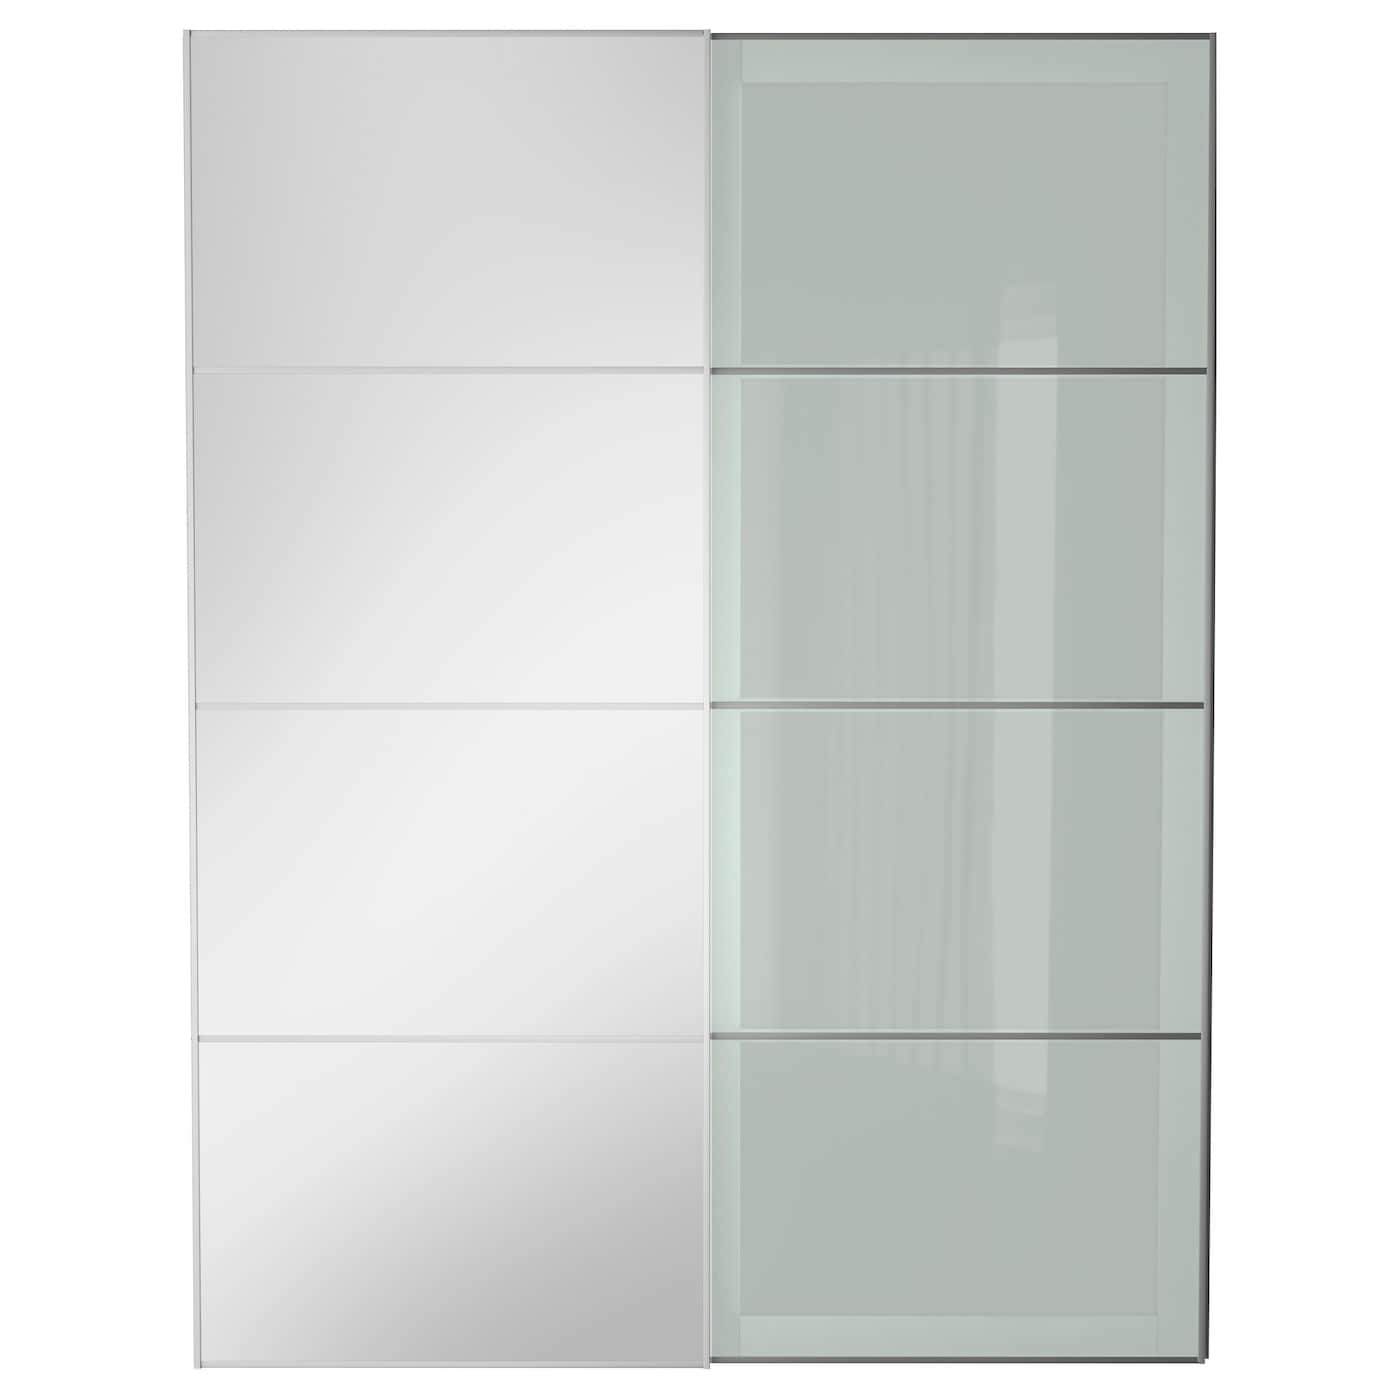 Aulisekken Pair Of Sliding Doors Mirror Glassfrosted Glass 150 X